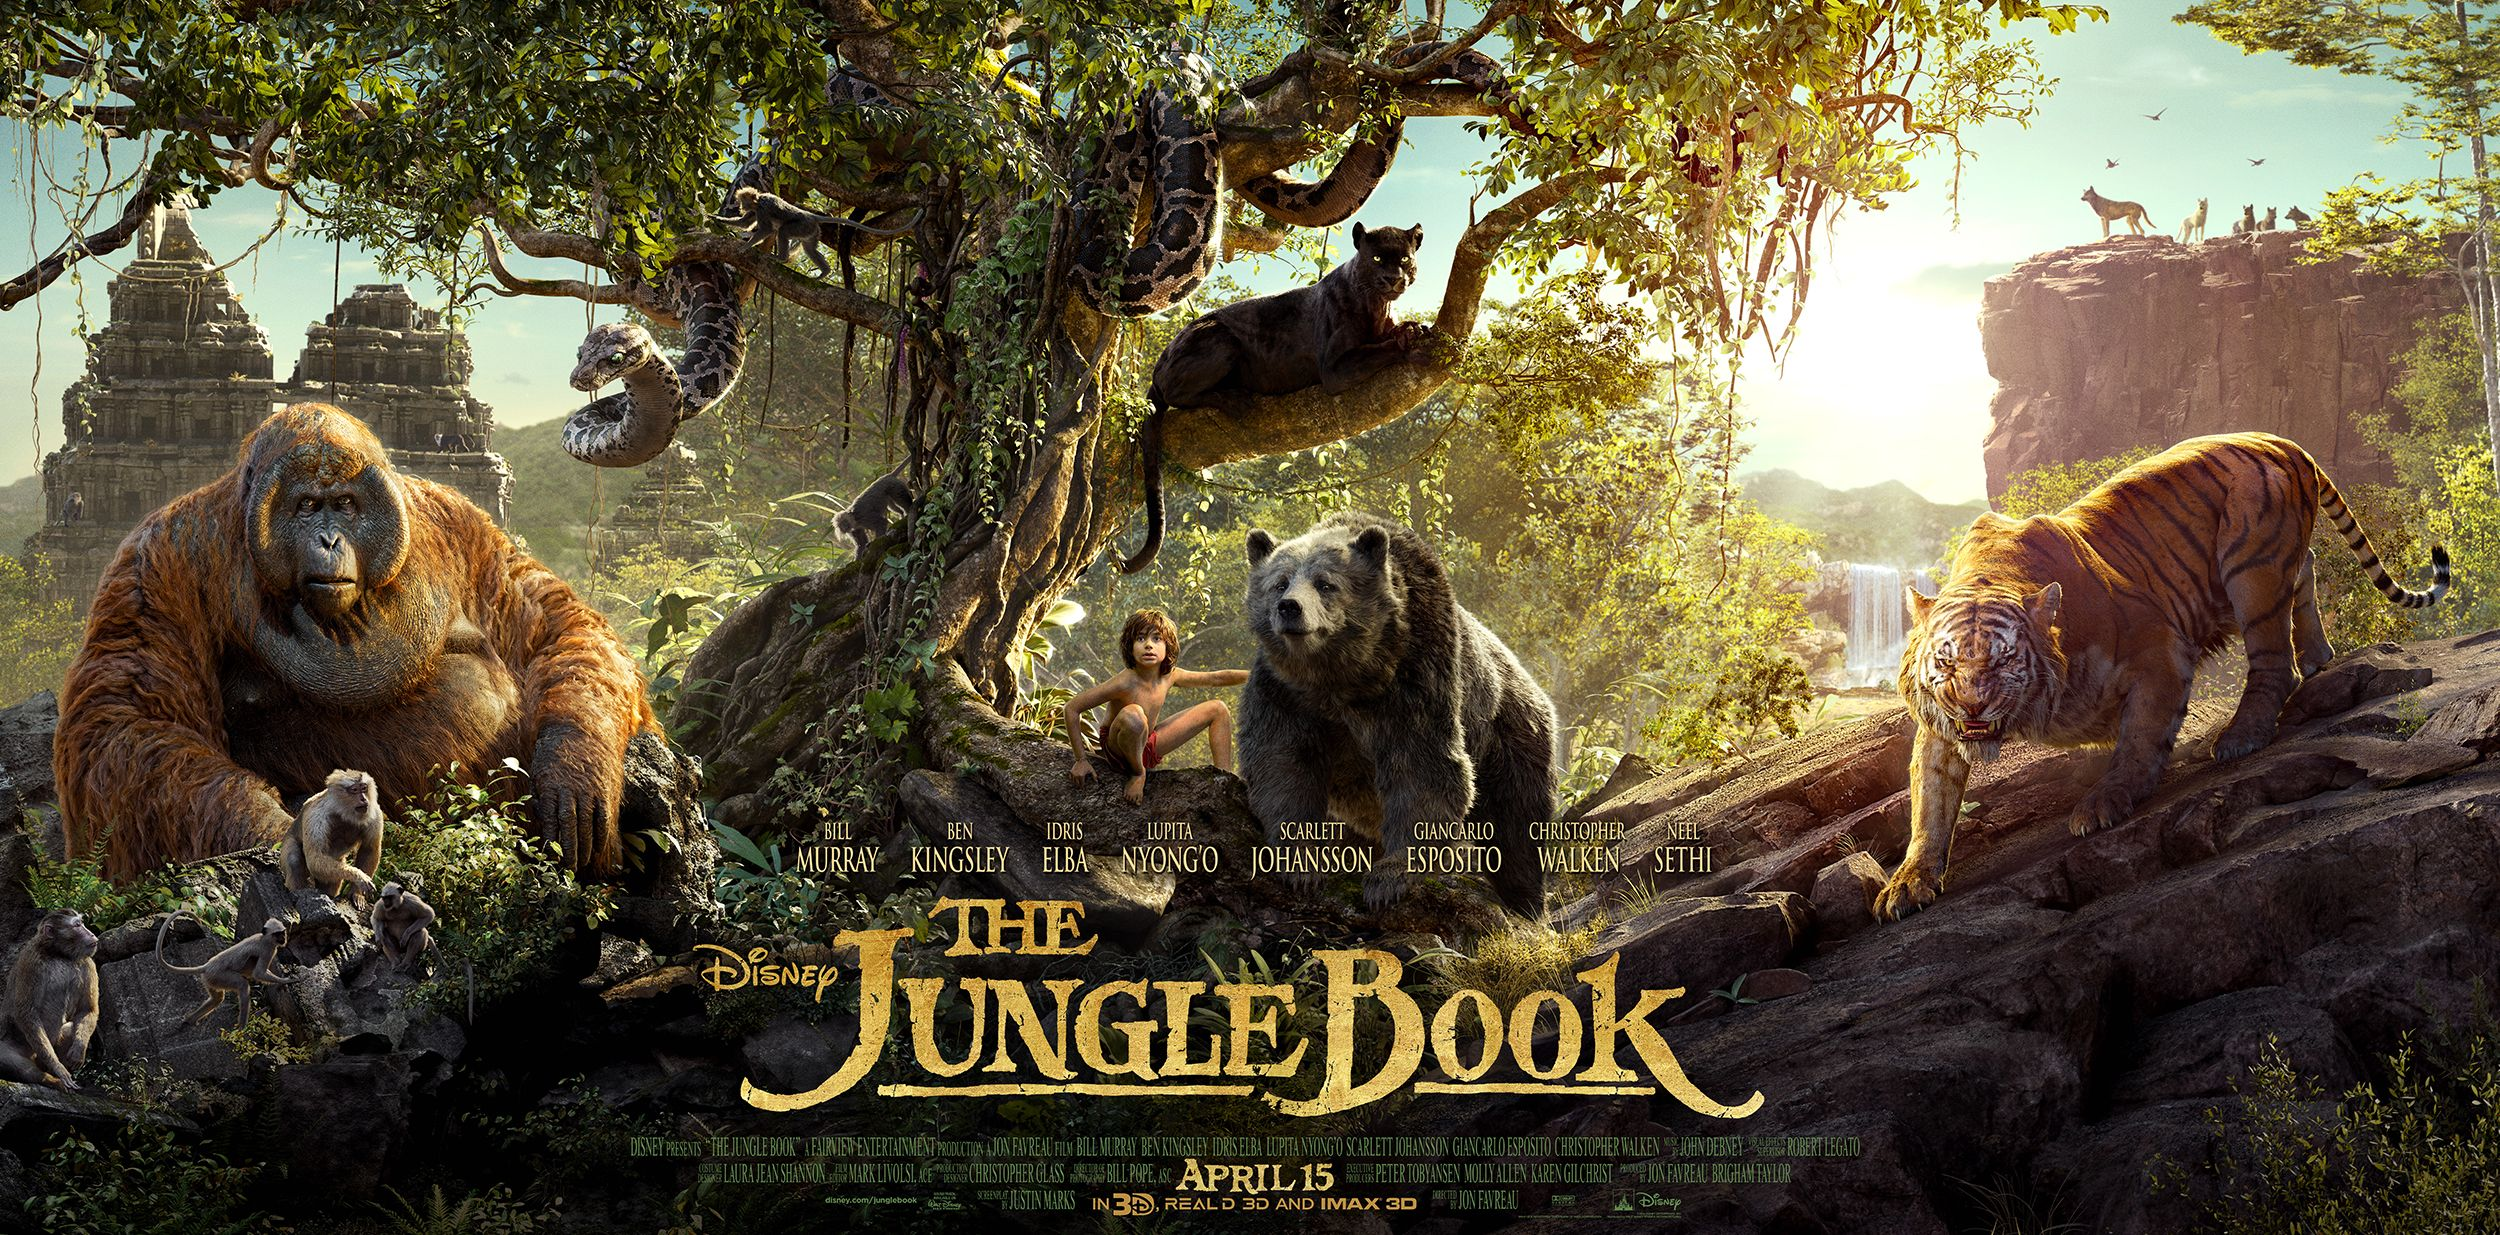 Jungle book releases new poster print it today